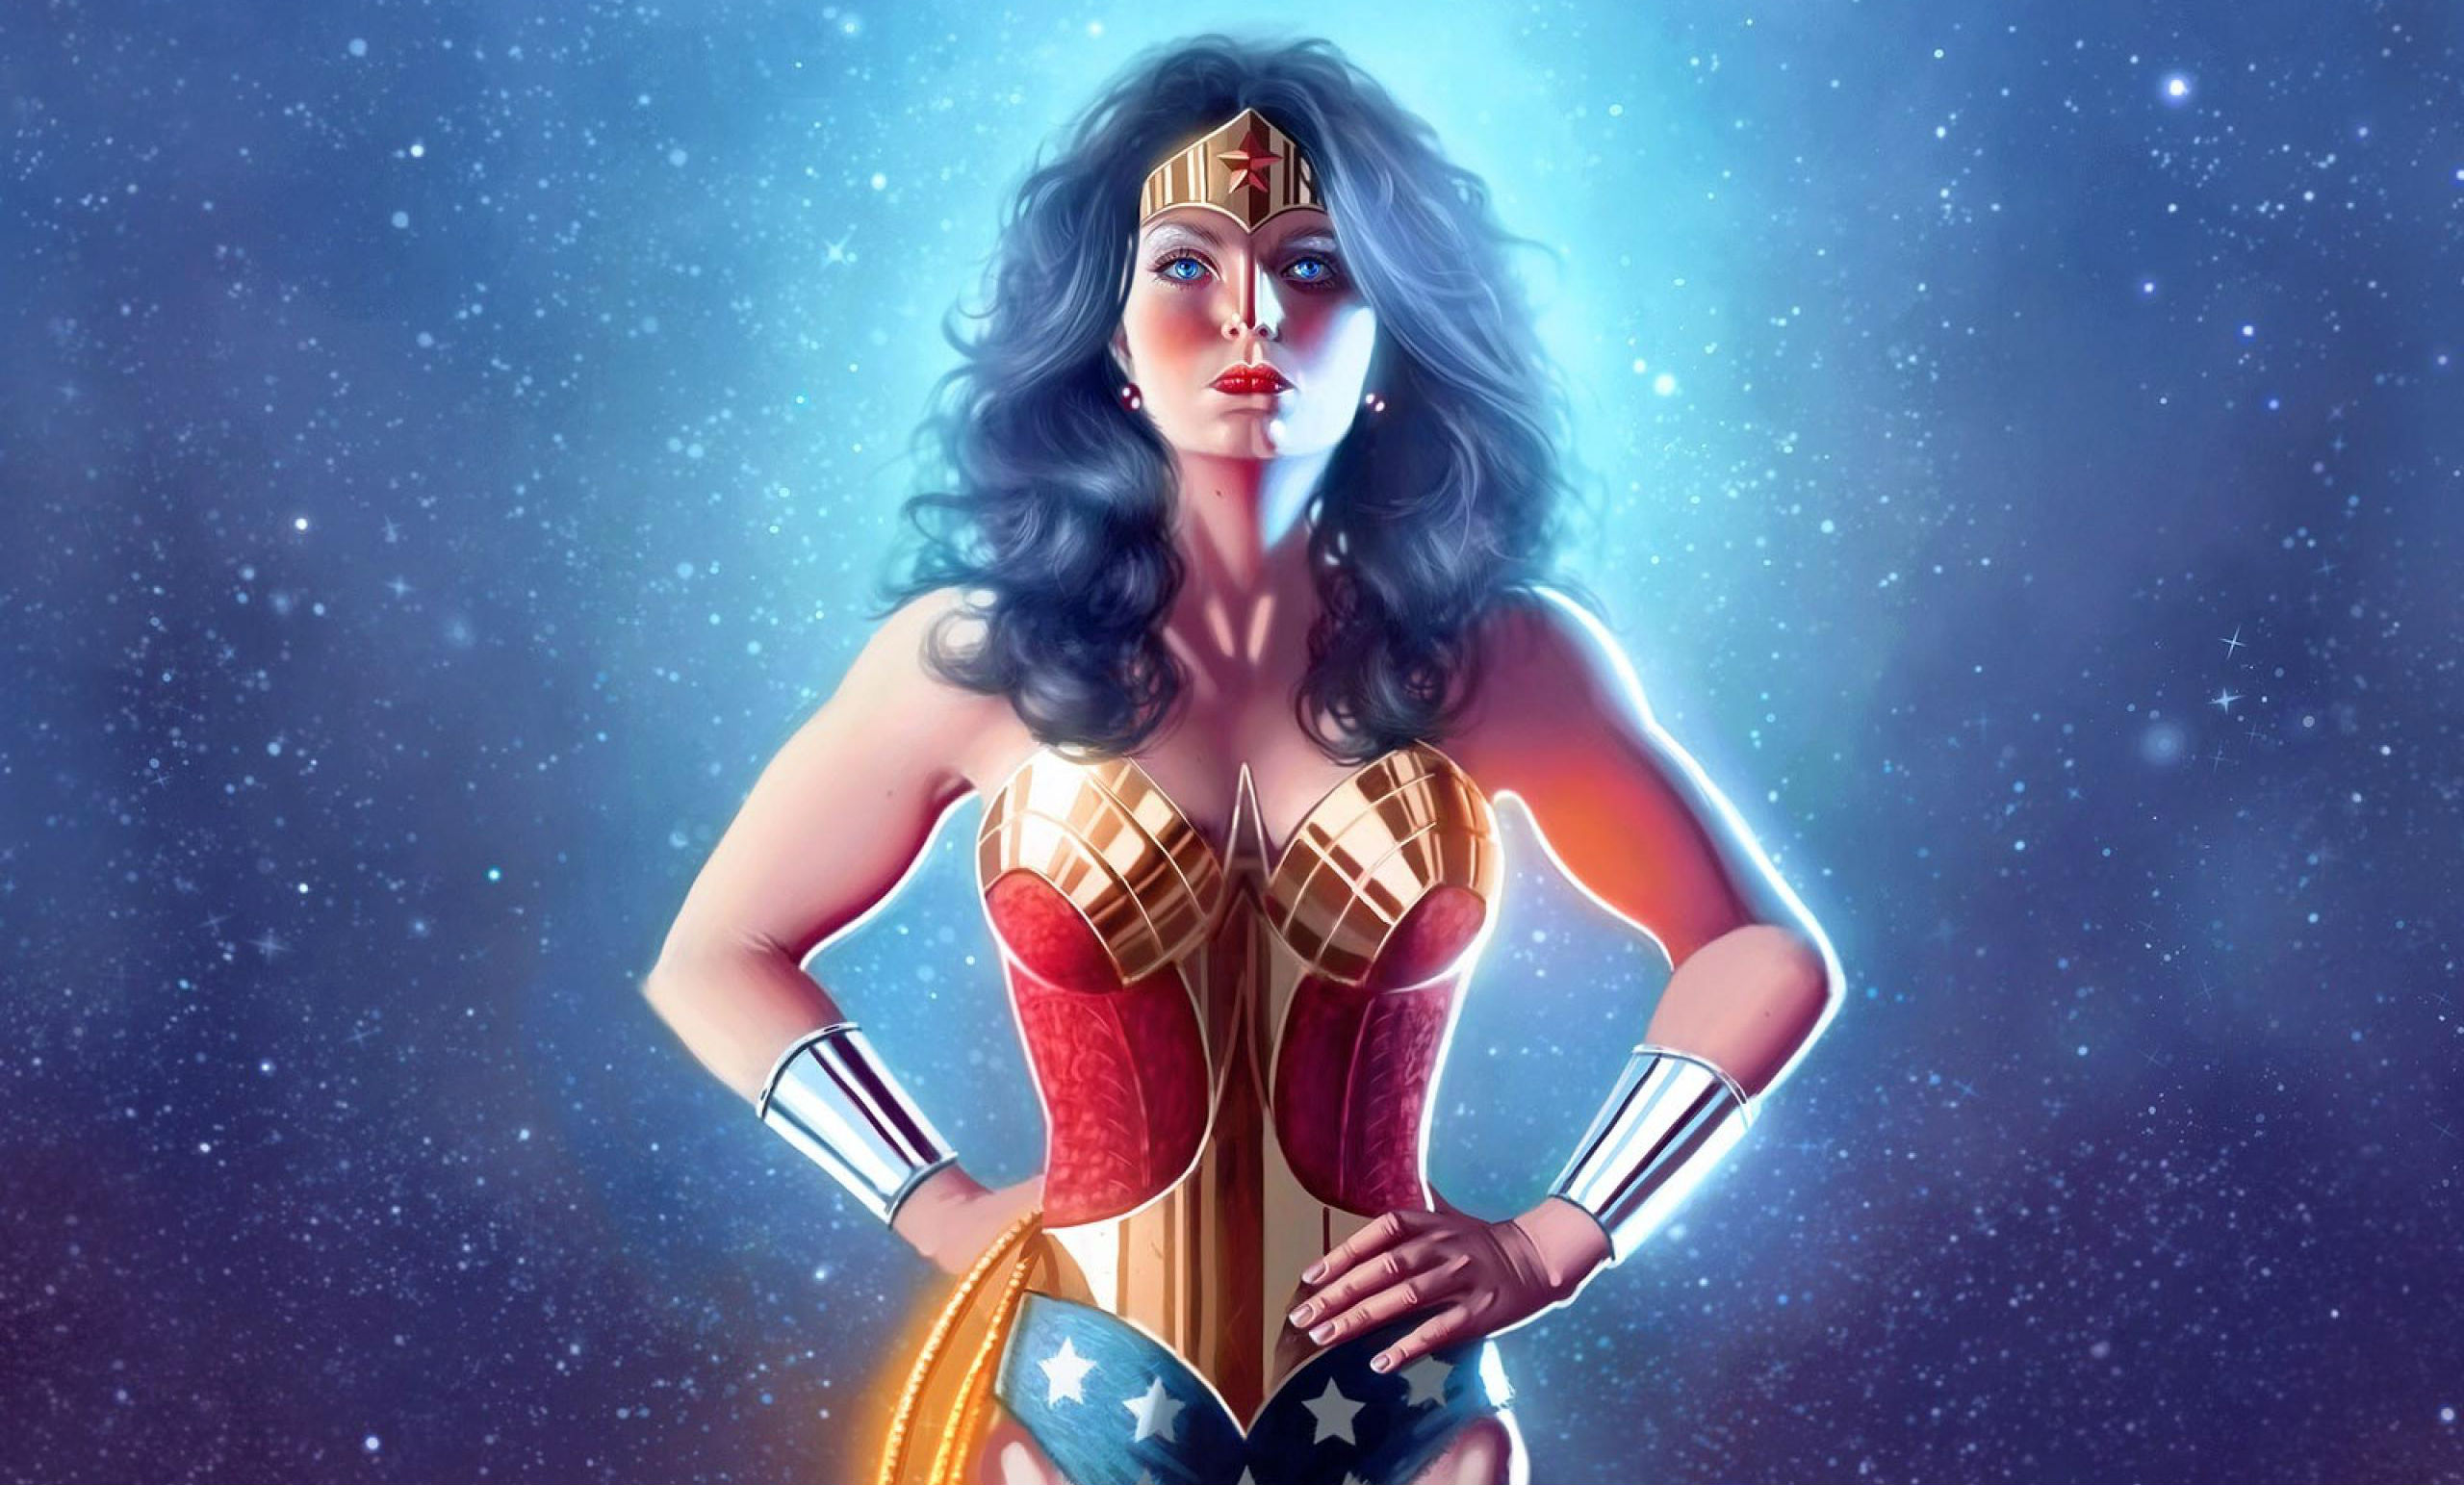 Download Female Superhero Wallpaper